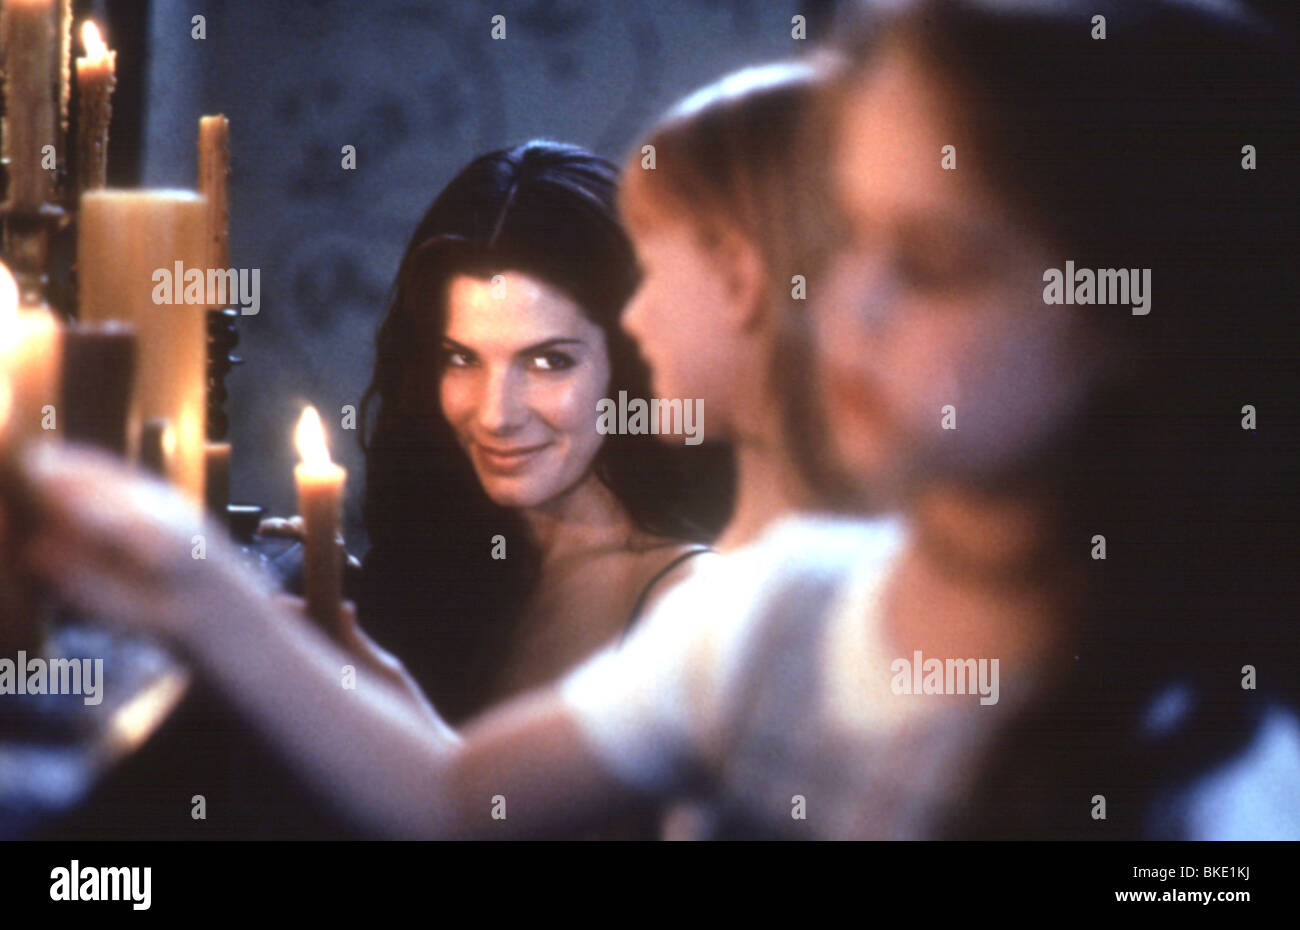 PRACTICAL MAGIC (1999) SANDRA BULLOCK PRMG 009 - Stock Image